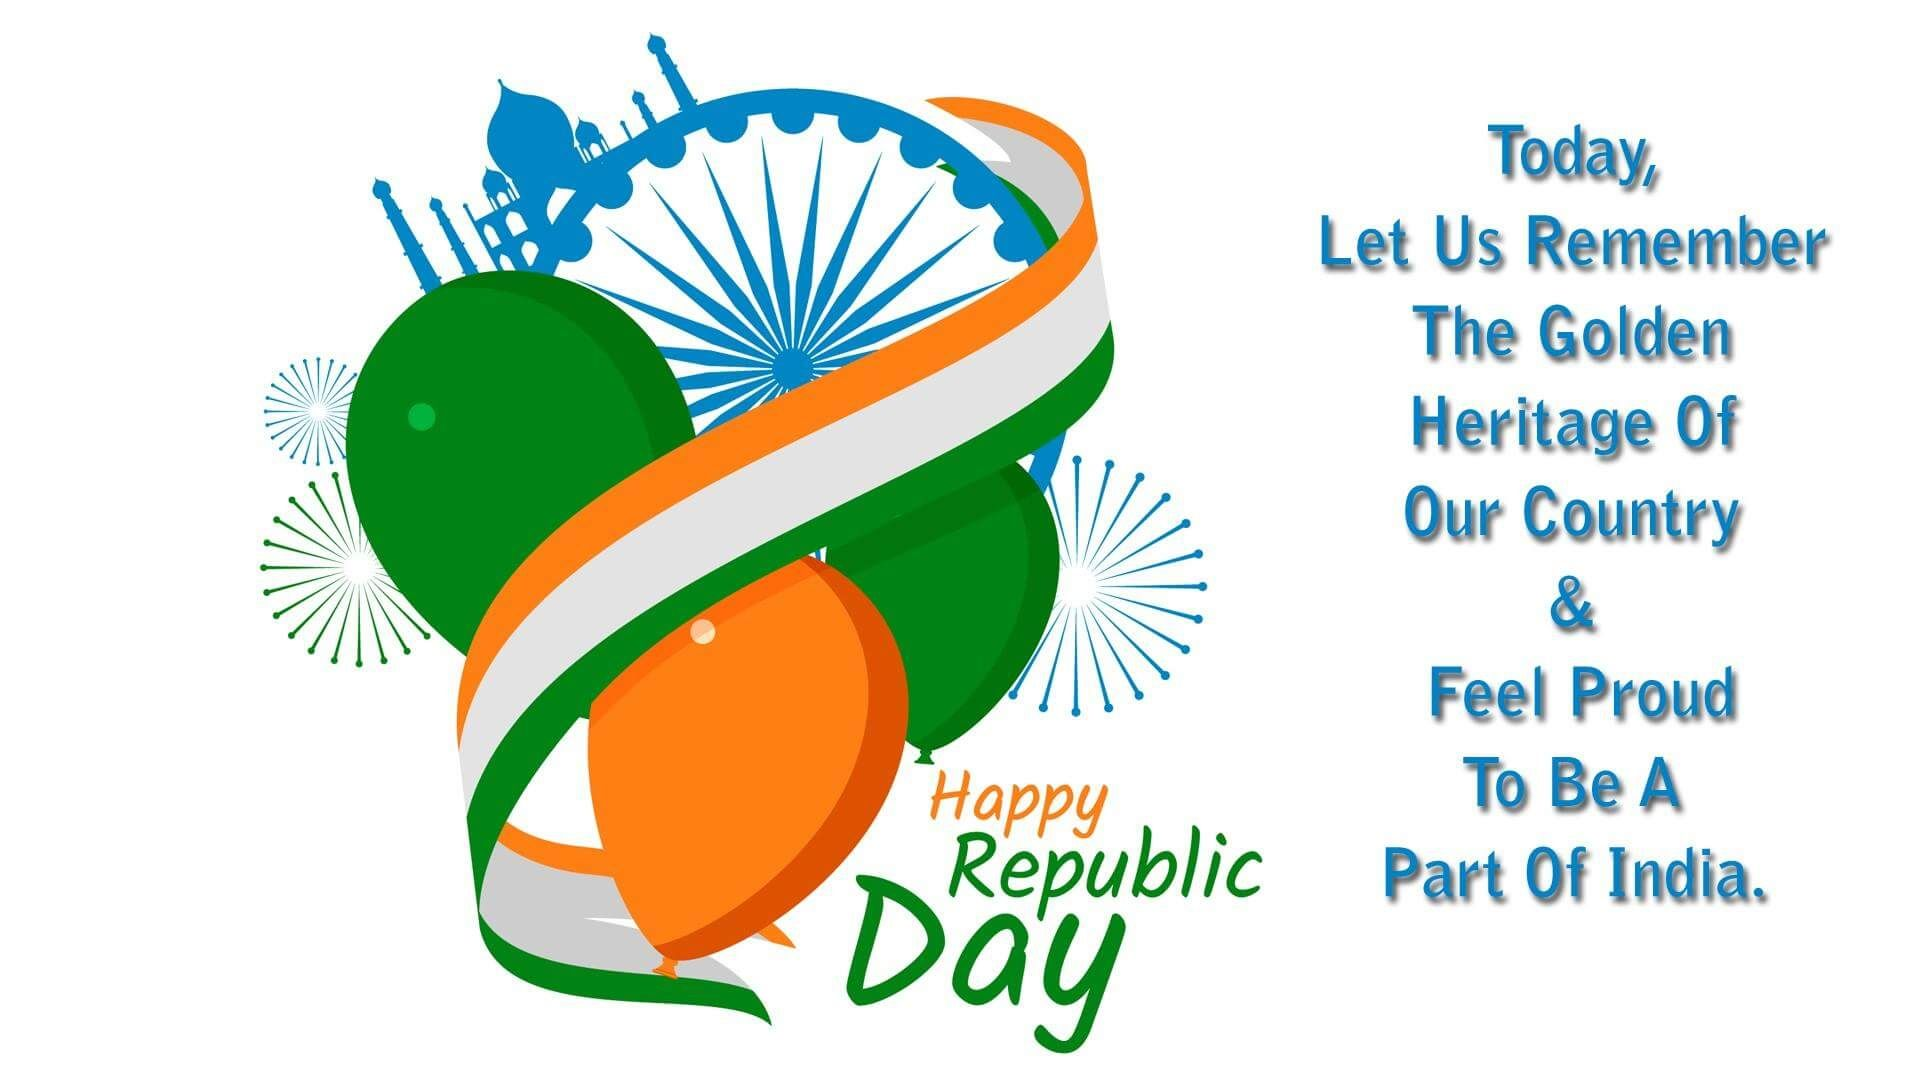 50 Happy Republic Day Images And Photo Collection 2020 List Bark Republic Day Republic Day Message India Republic Day Images Happy republic day images hd 2021